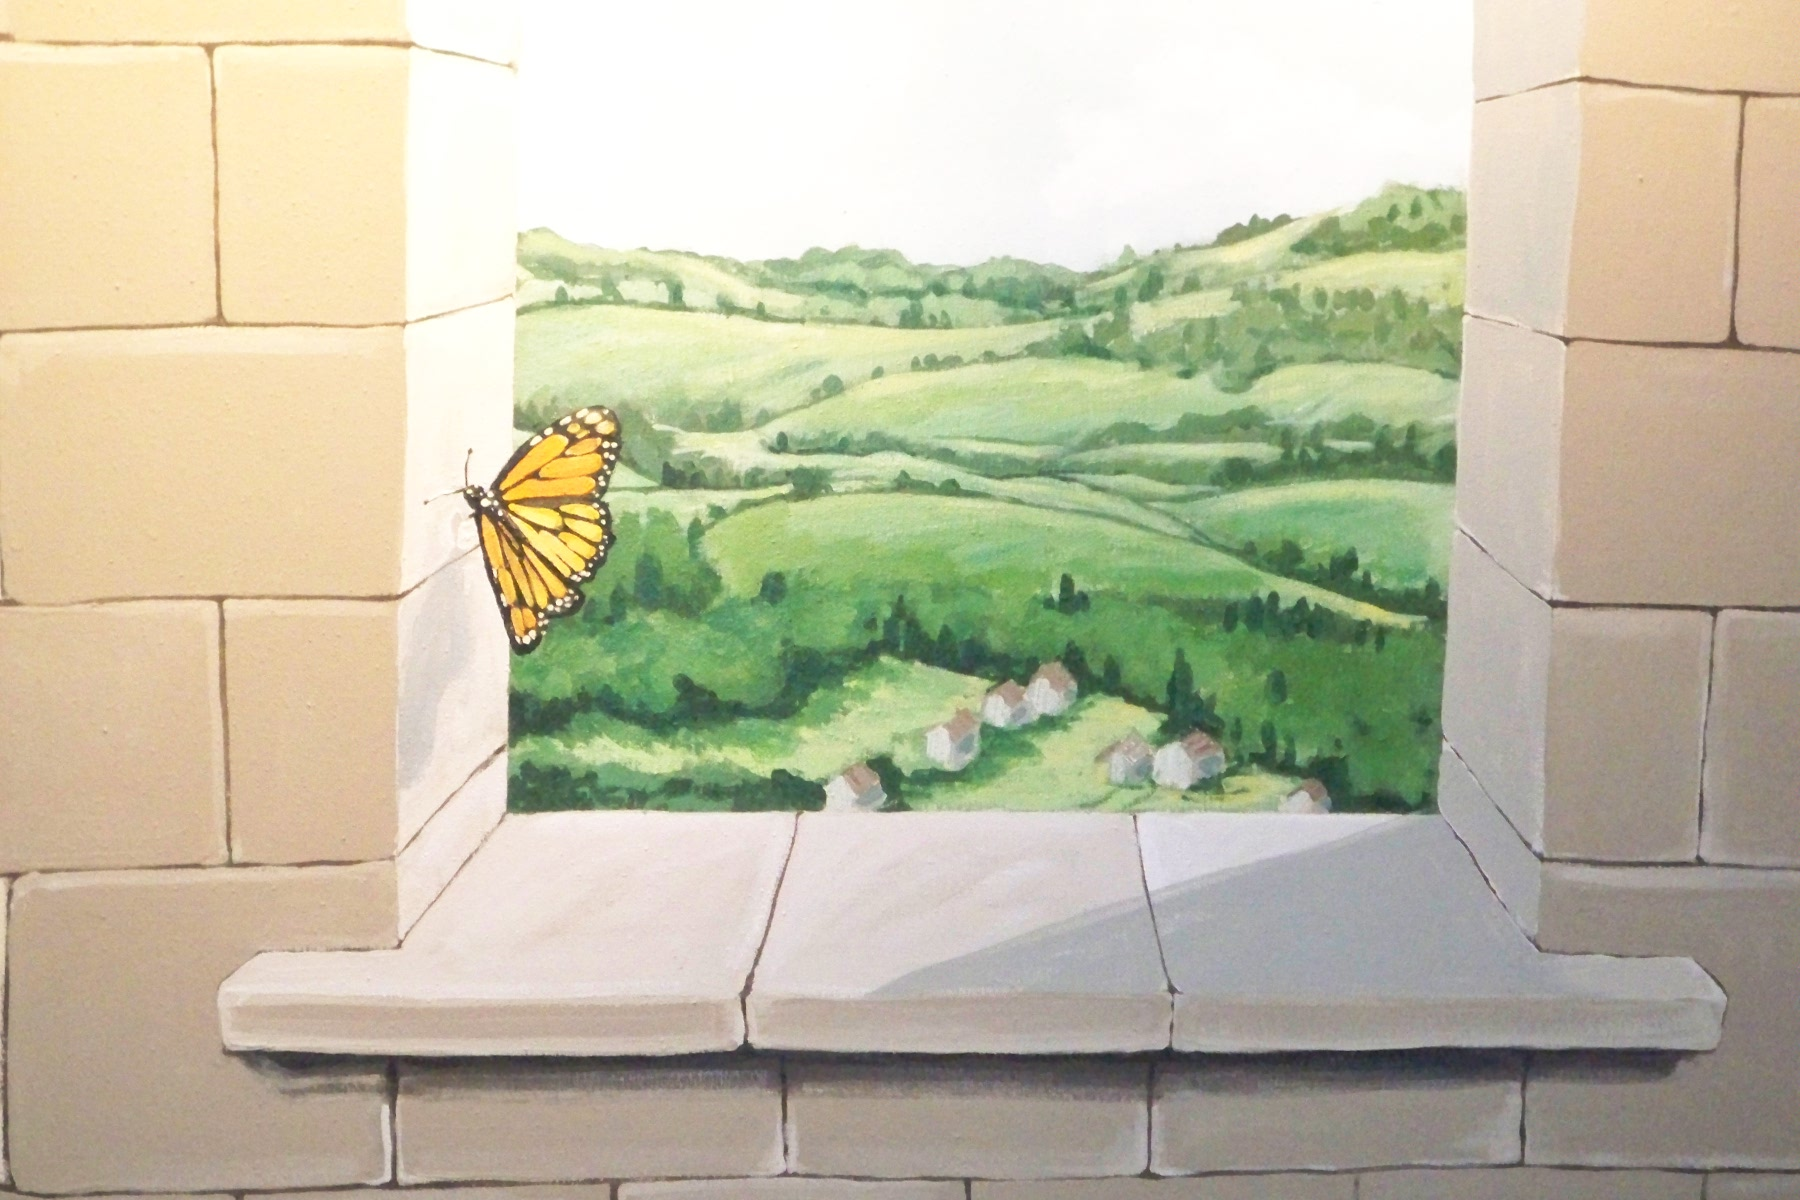 Murals By Marg Butterfly Playroom Mural 3.JPG